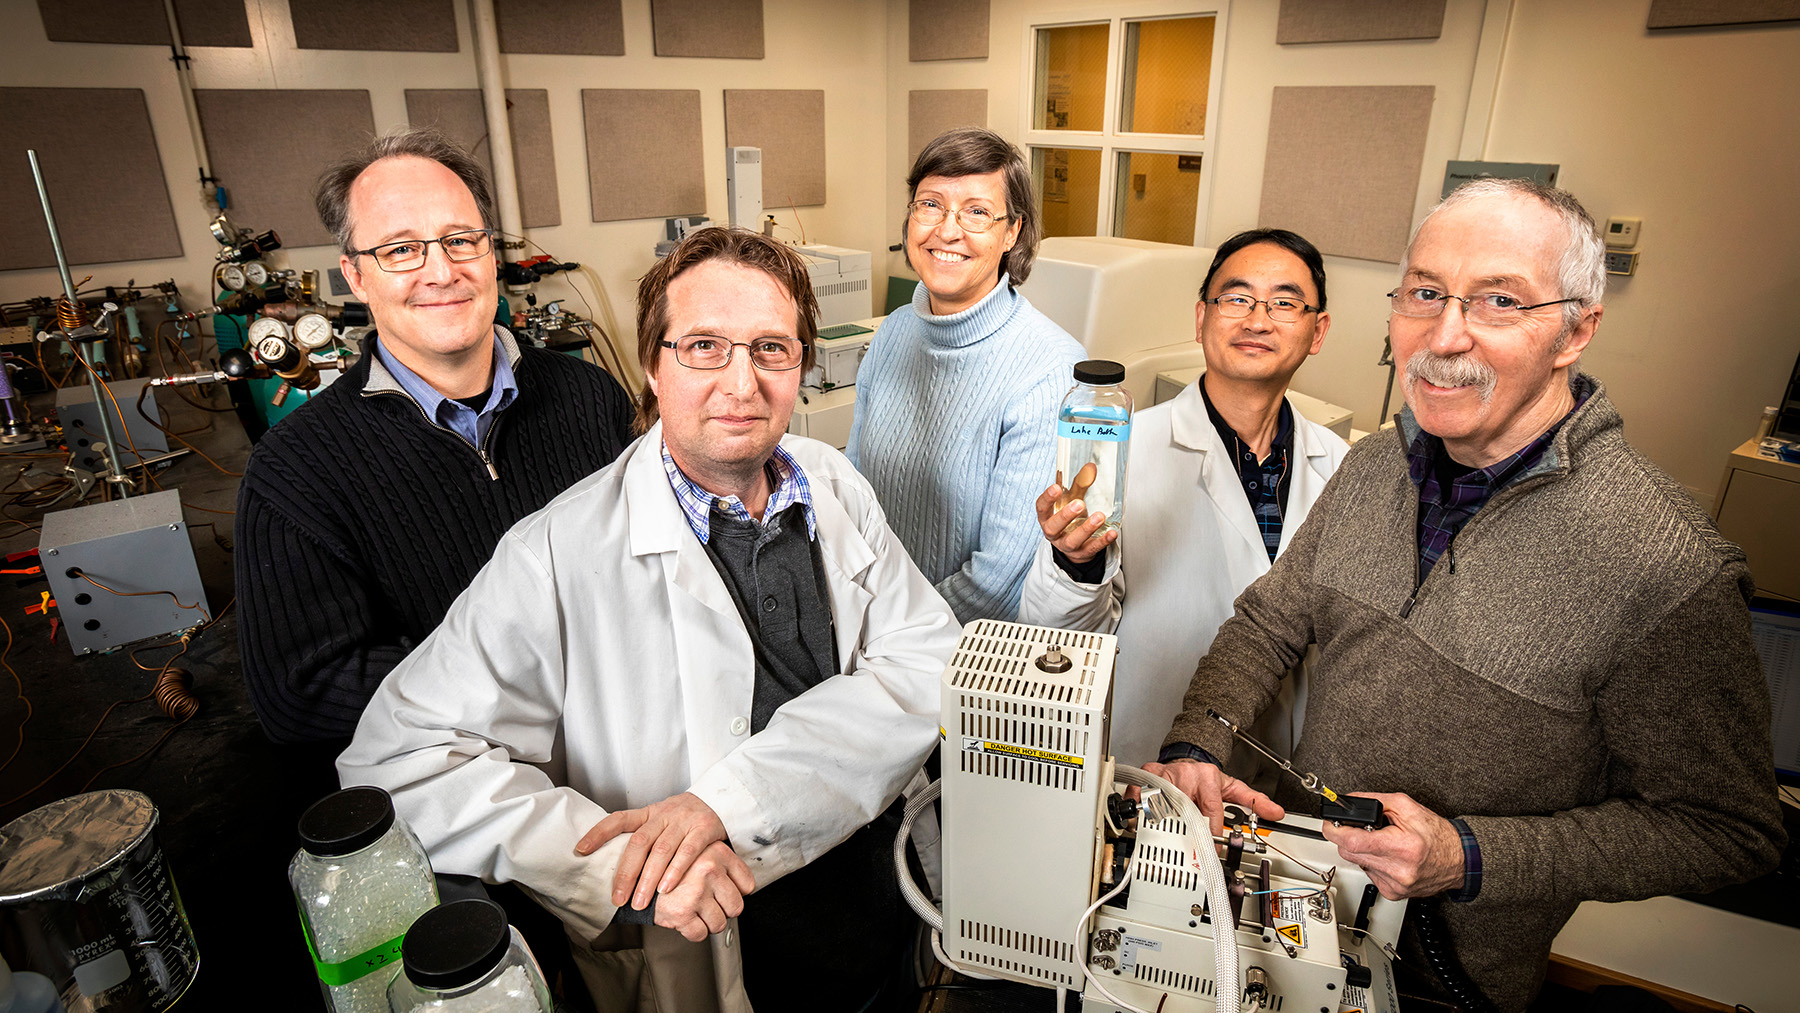 The University of Illinois-led study included researchers from the Prairie Research Institute. Pictured, from left: Walton R. Kelly, John Scott, Nancy Holm, Wei Zheng and lead author Samuel V. Panno.  Photo by Fred Zwicky